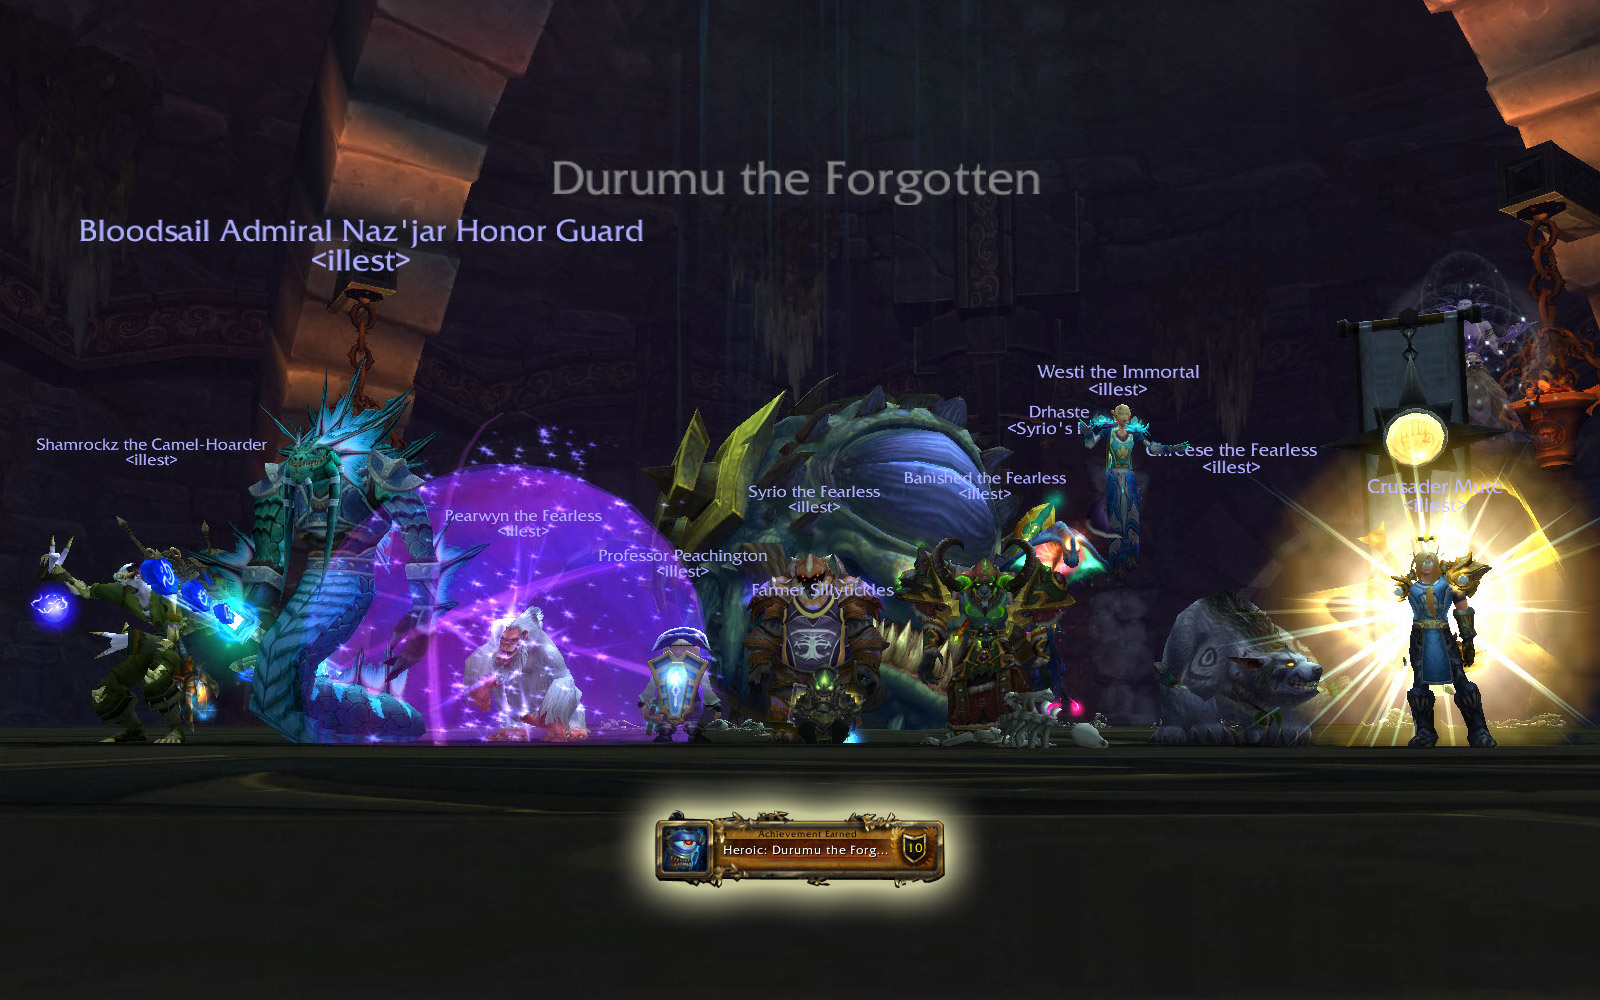 Heroic Throne of Thunder: Durumu the Forgotten